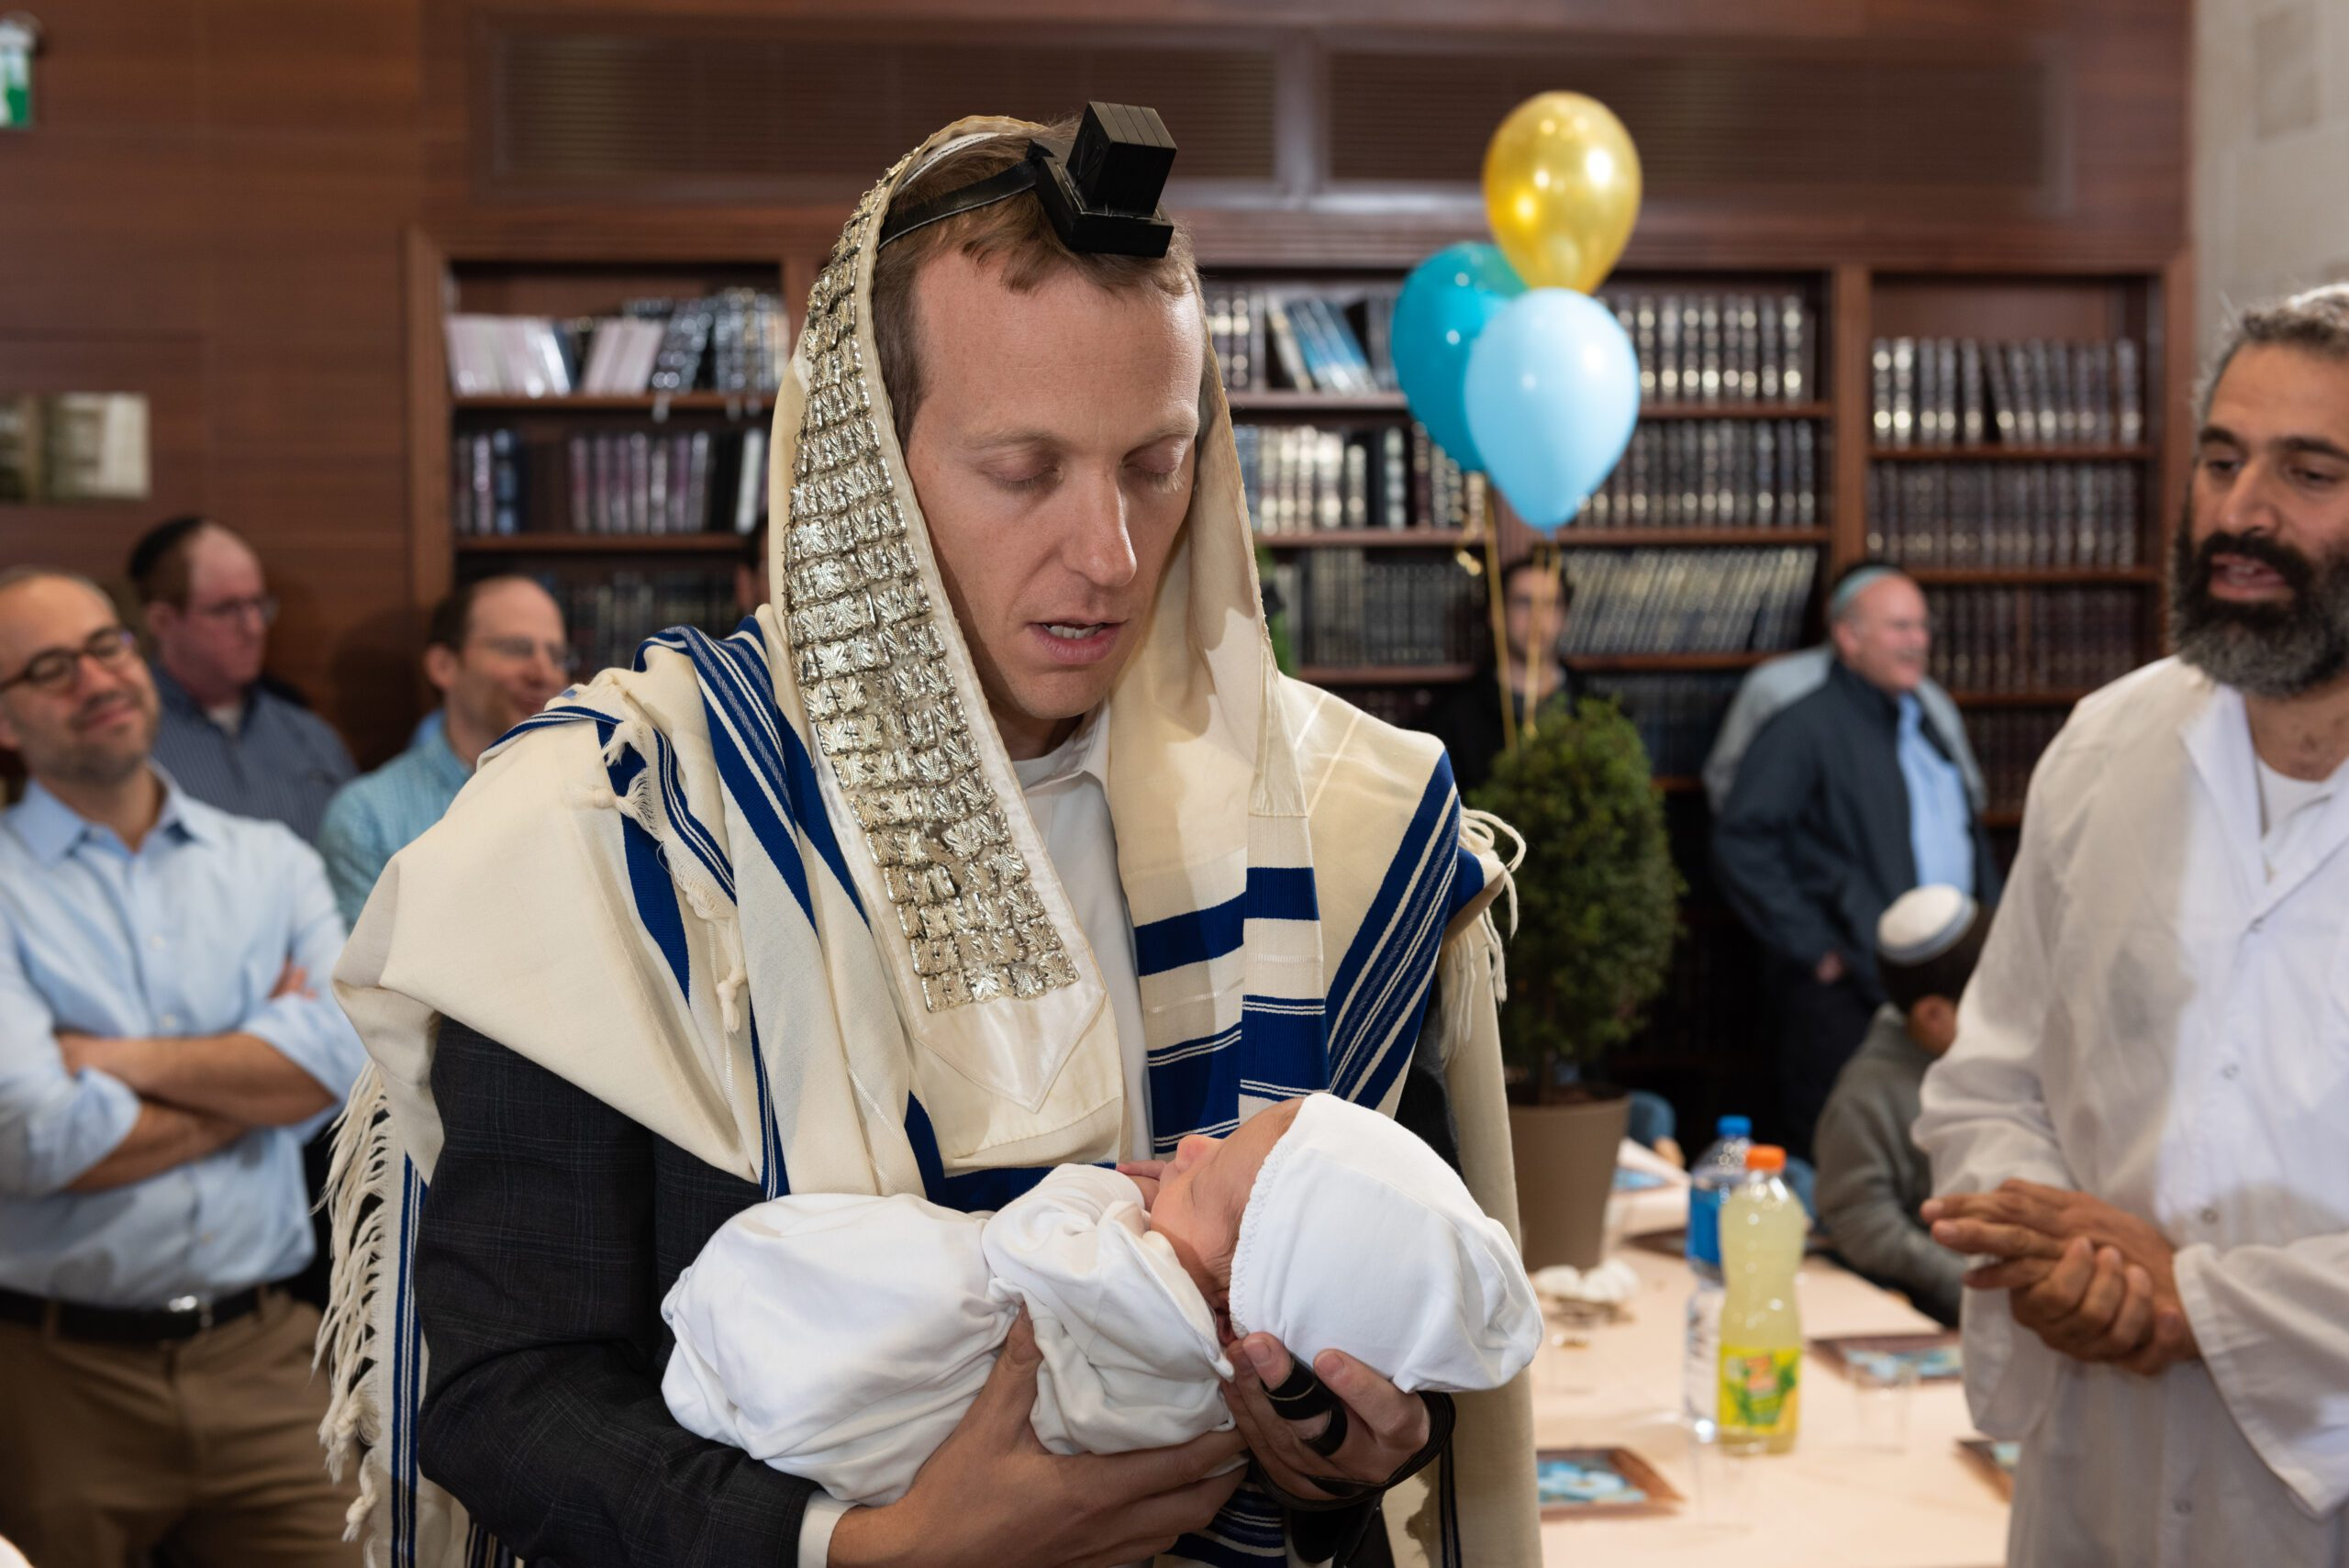 Rabbi Tuly Weisz entering his son into the Brit Milah, the Covenant of Circumcision